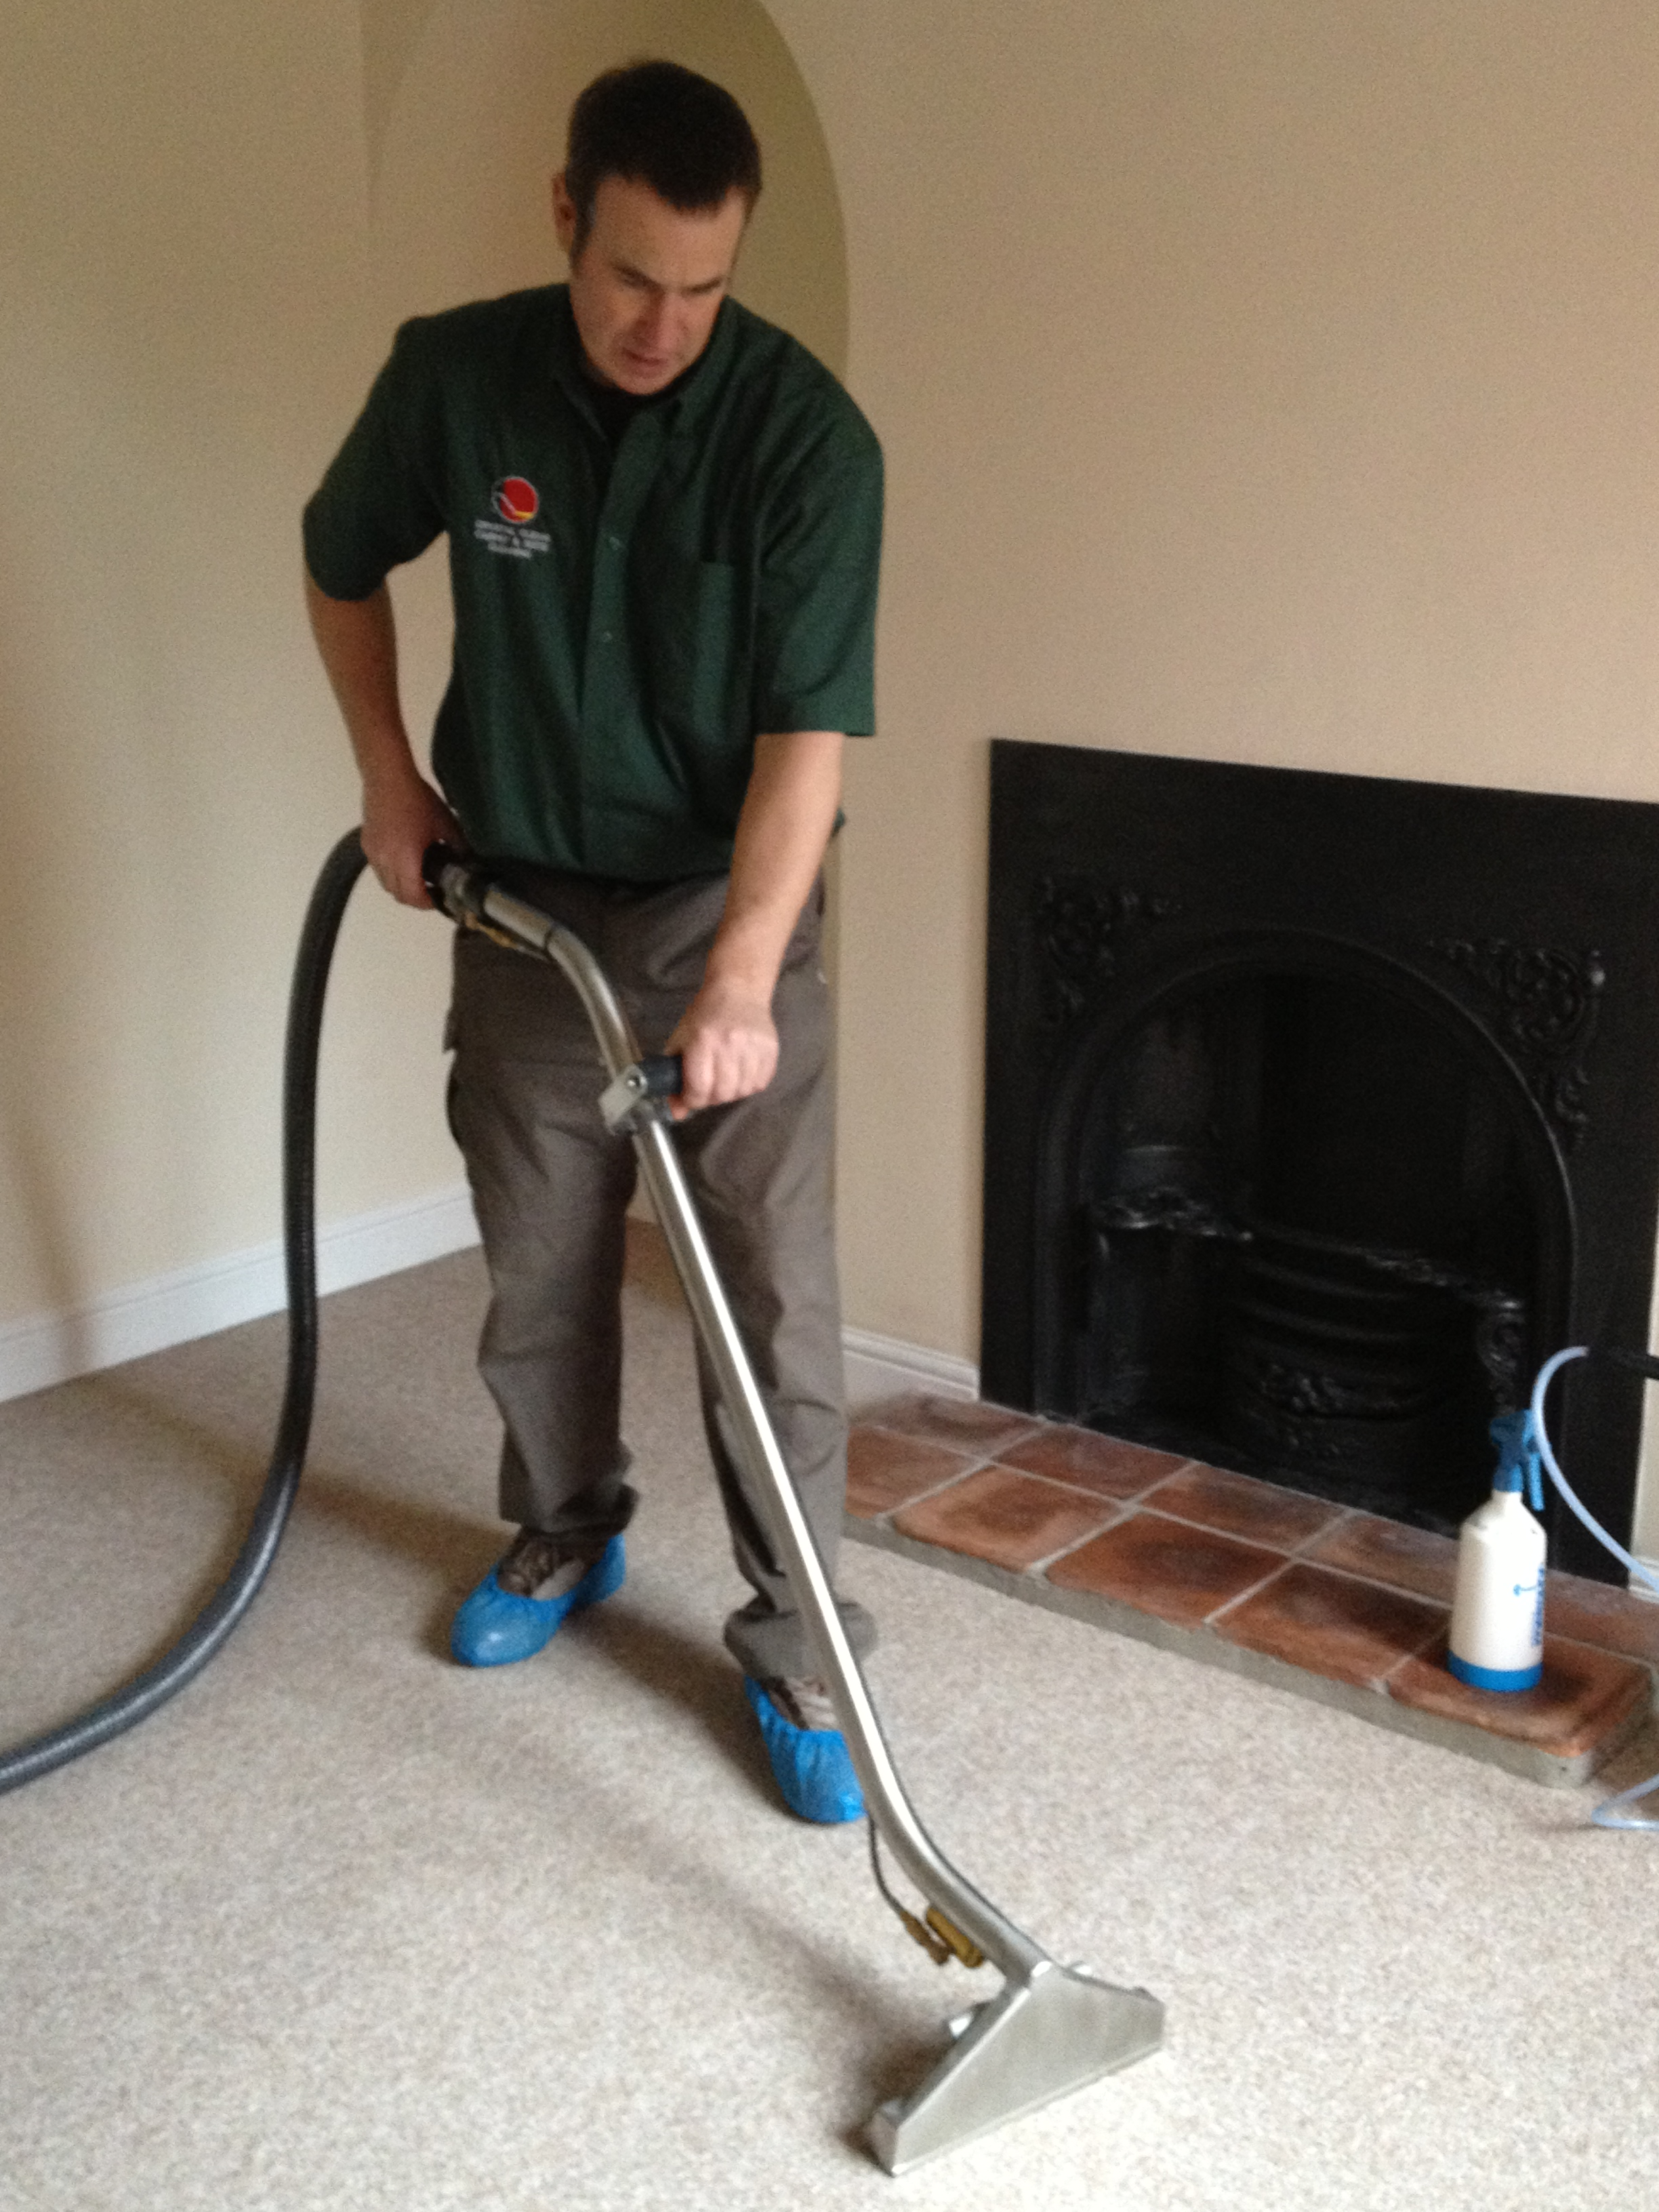 Norwich end of tenancy greener carpet cleaning